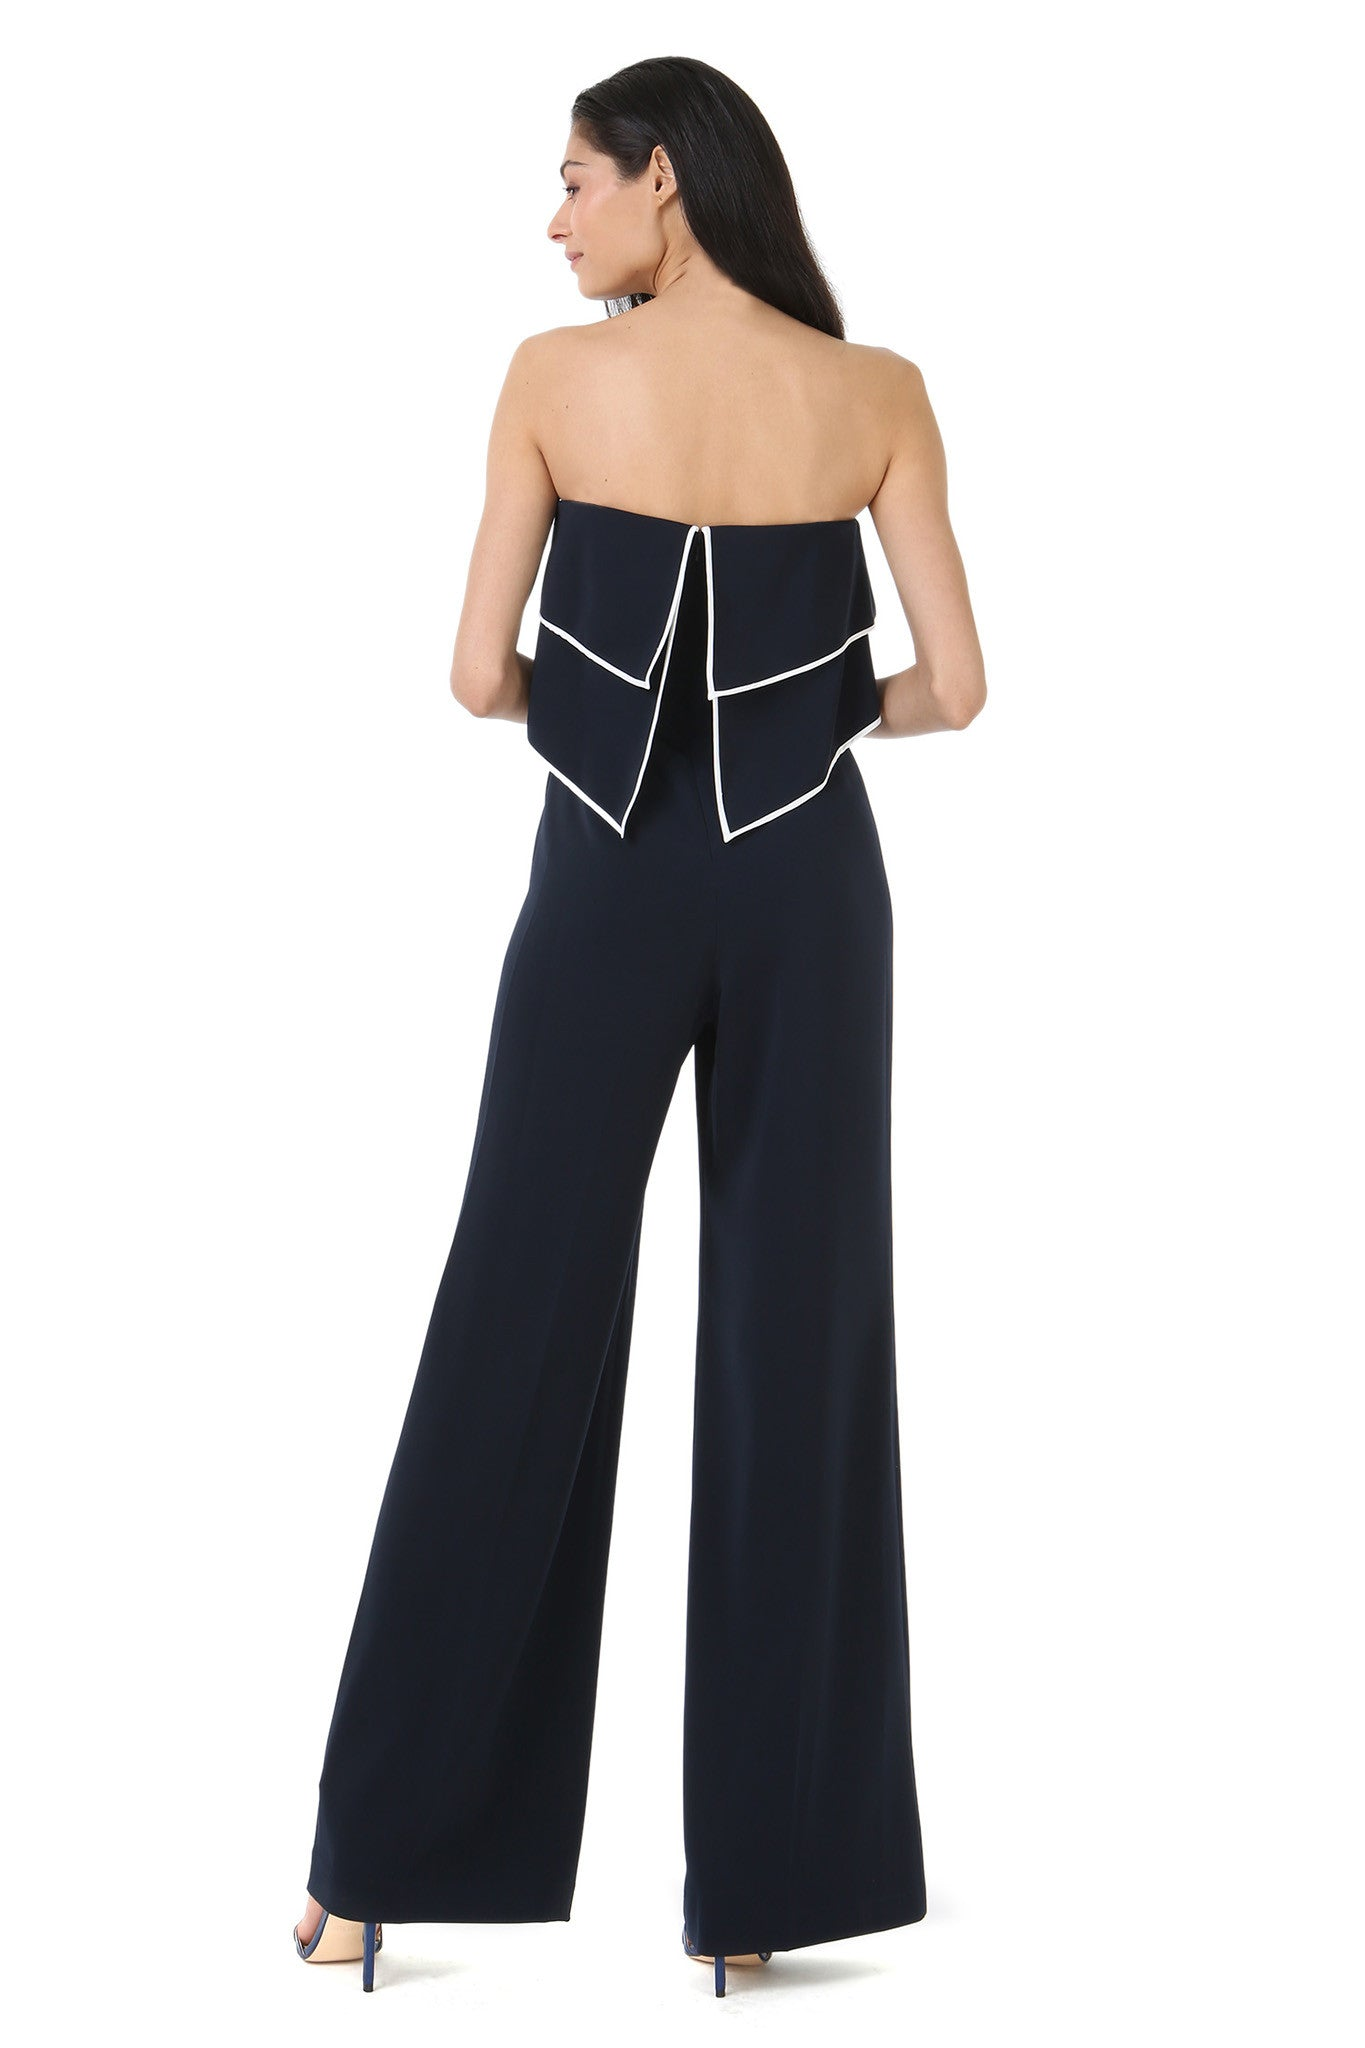 Strapless Navy Jumpsuit with Overlay - Back View